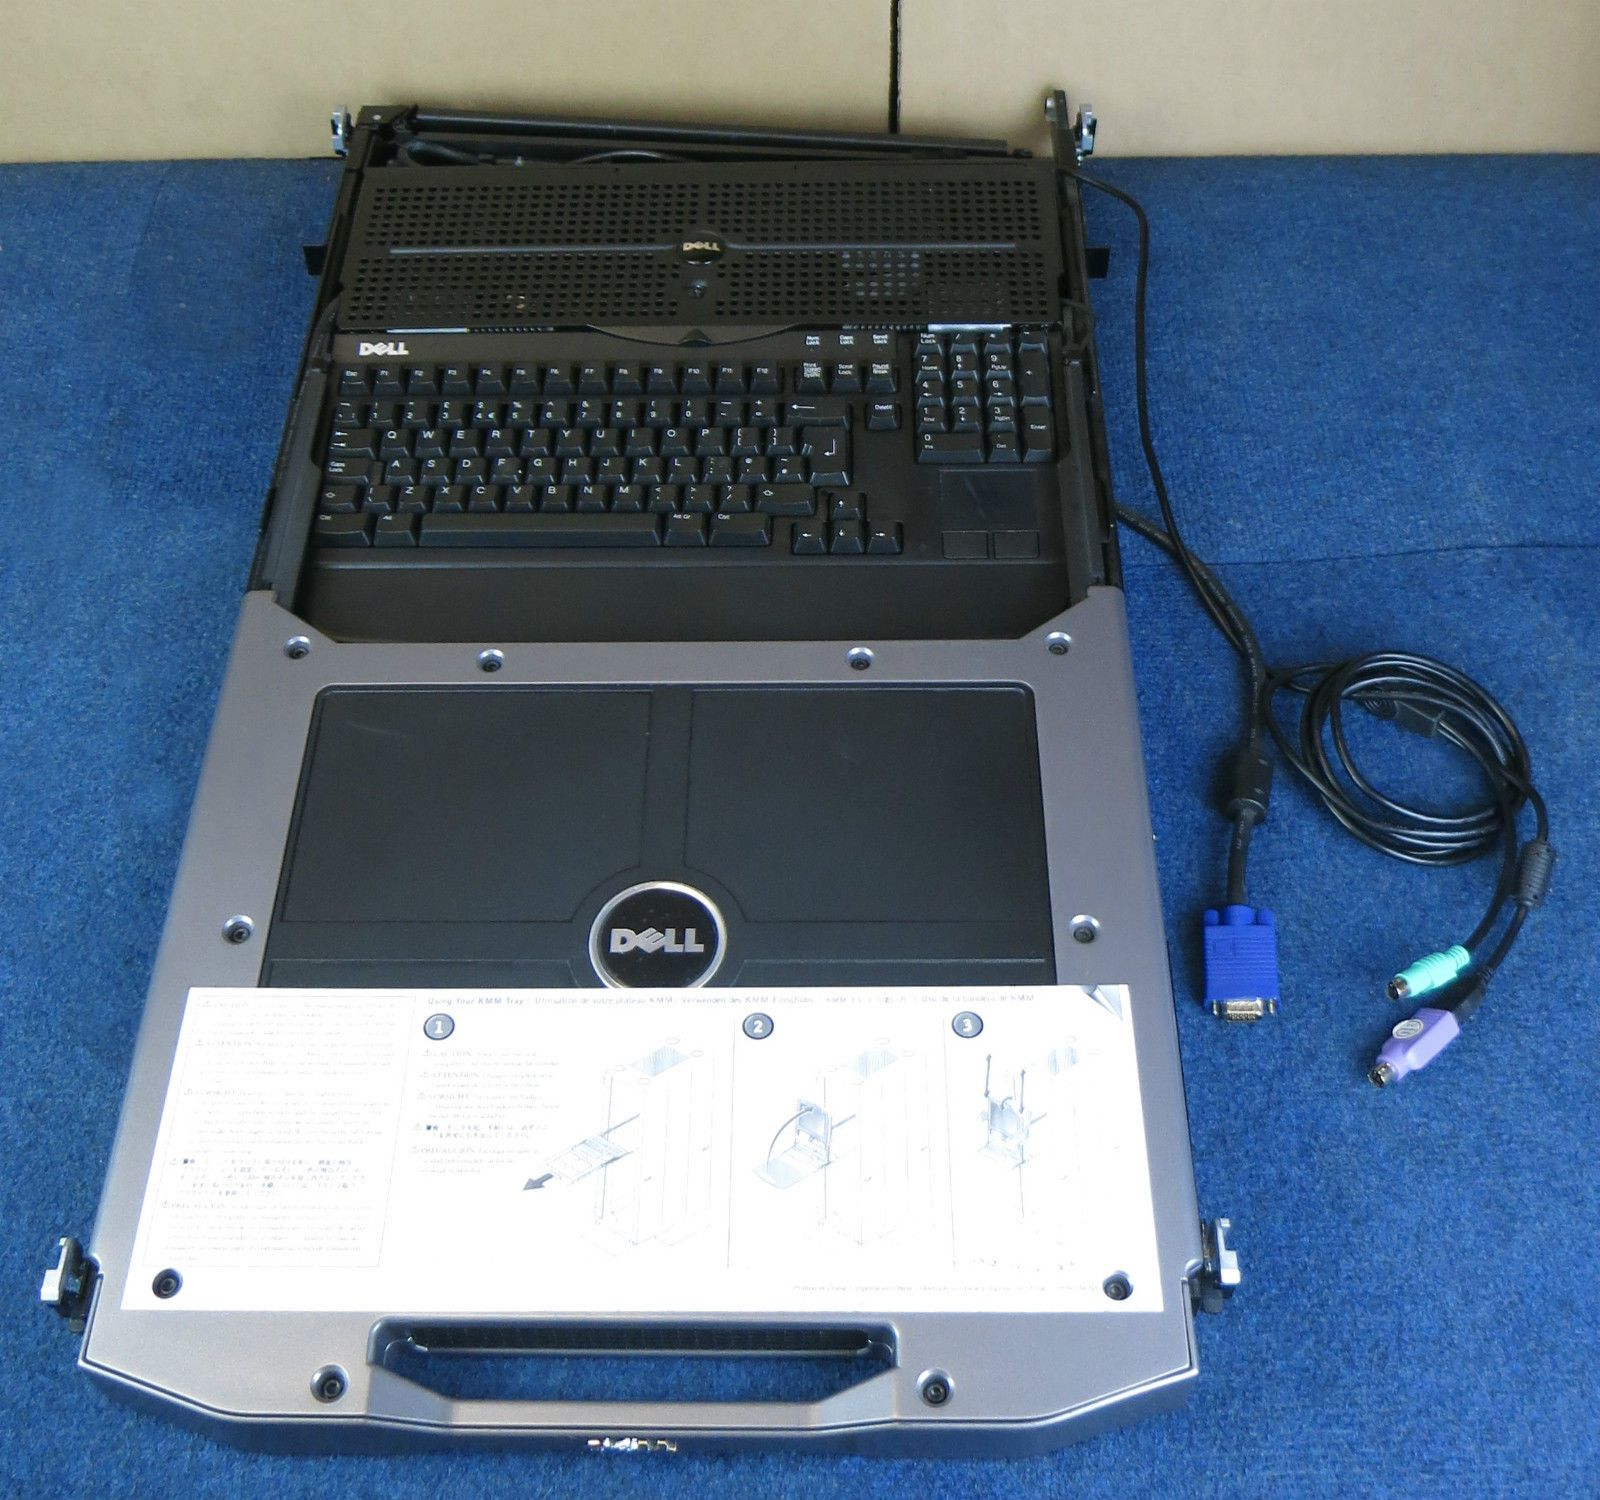 Dell Poweredge 17p Hp535 1u Rack Mount Console Kvm 17 Tft